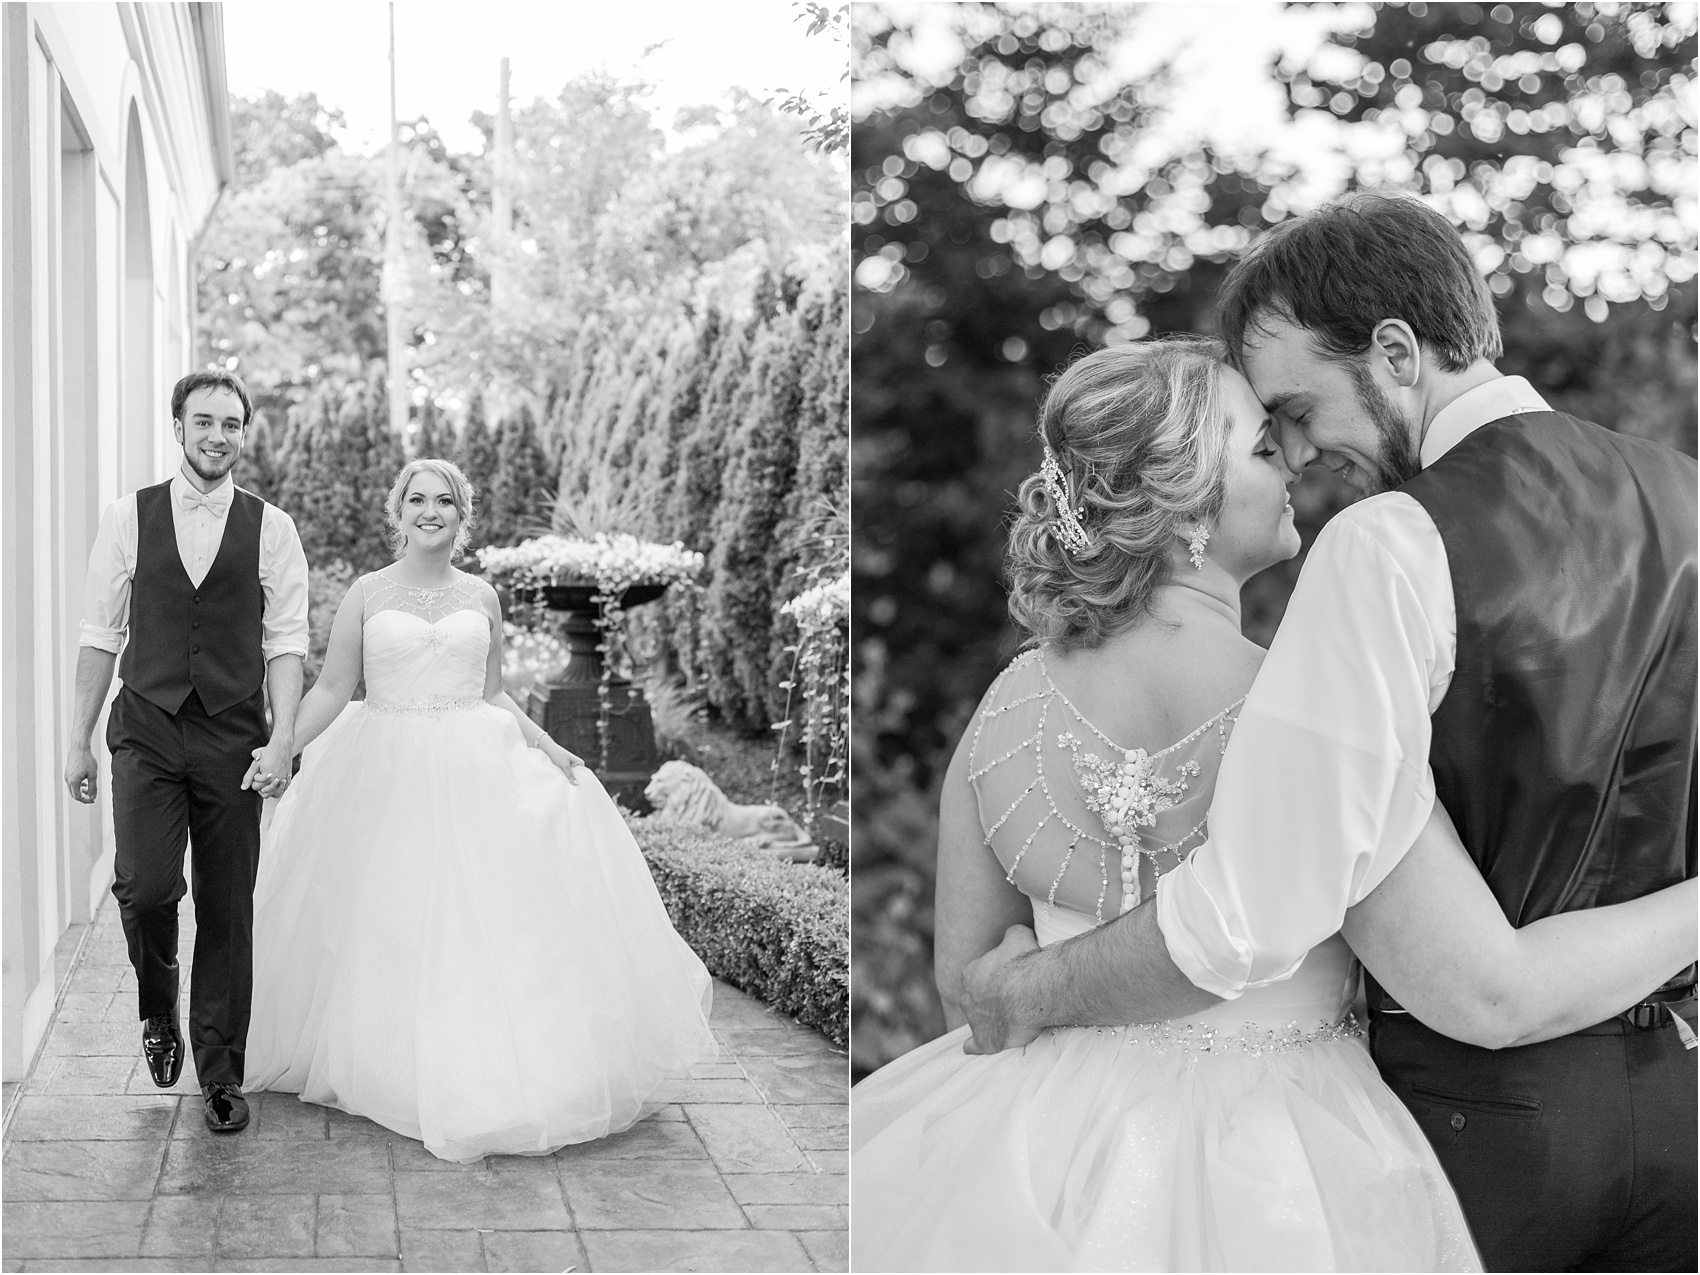 lord-of-the-rings-inspired-wedding-photos-at-crystal-gardens-in-howell-mi-by-courtney-carolyn-photography_0095.jpg